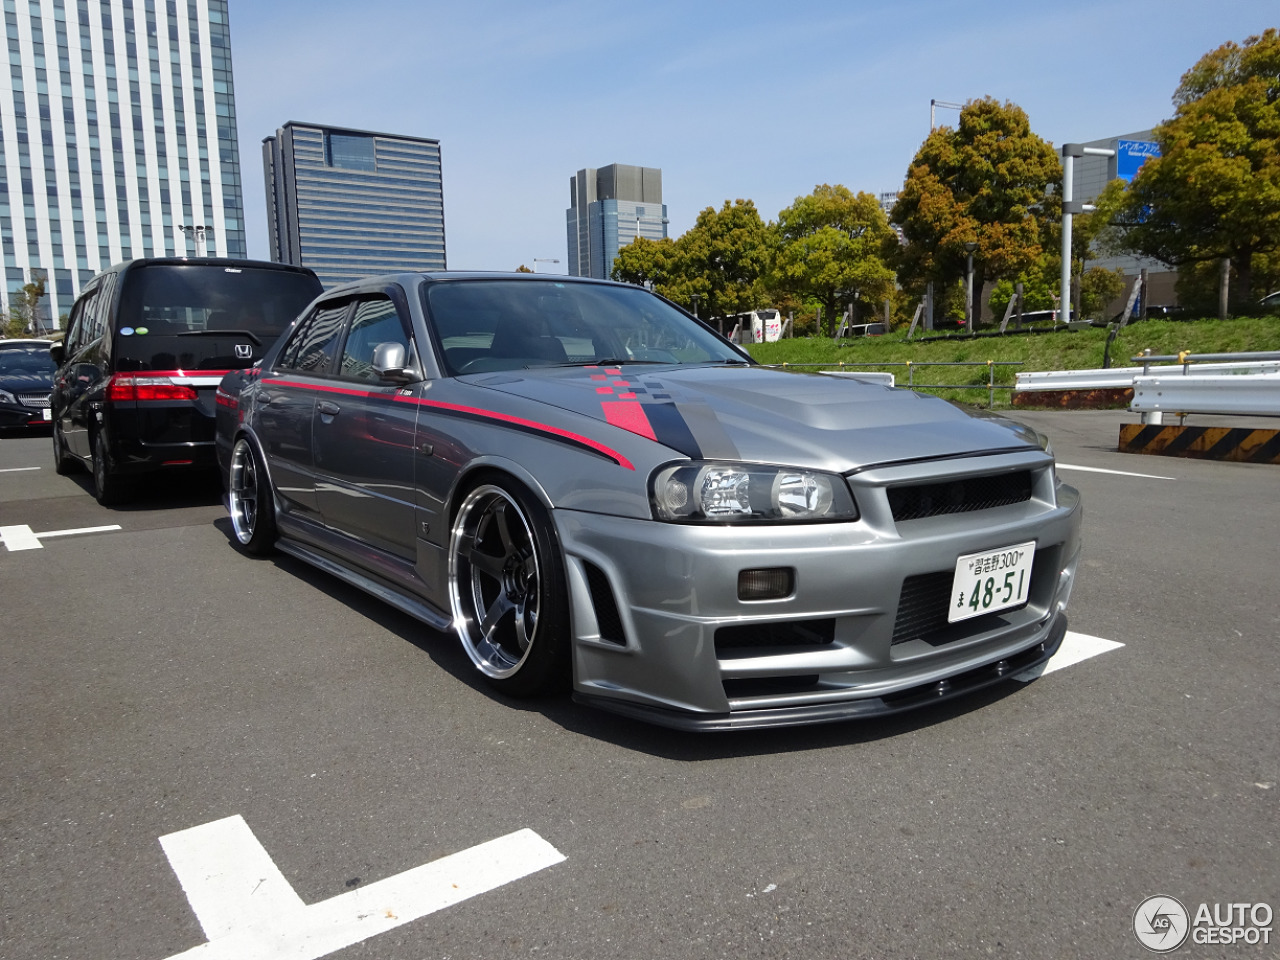 2009 Nissan Gtr For Sale >> Nissan Skyline R34 Sedan - 23 May 2015 - Autogespot